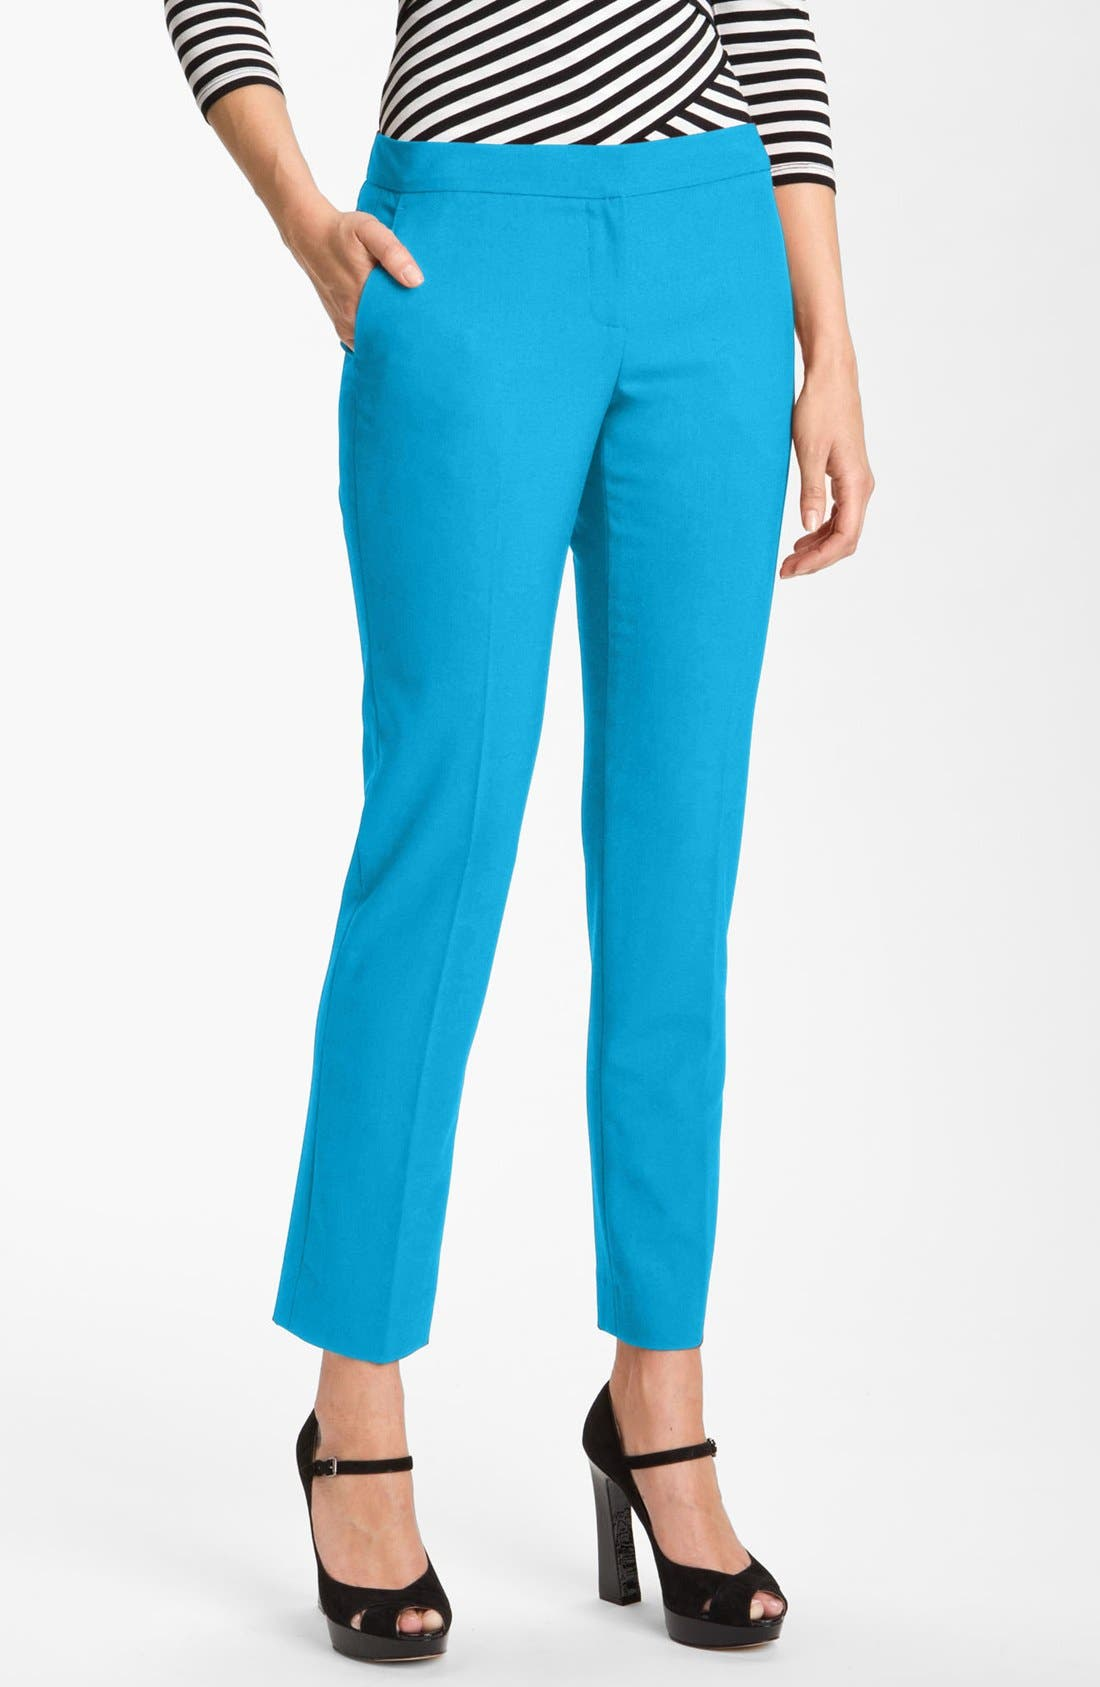 Main Image - Vince Camuto Skinny Ankle Pants (Petite)